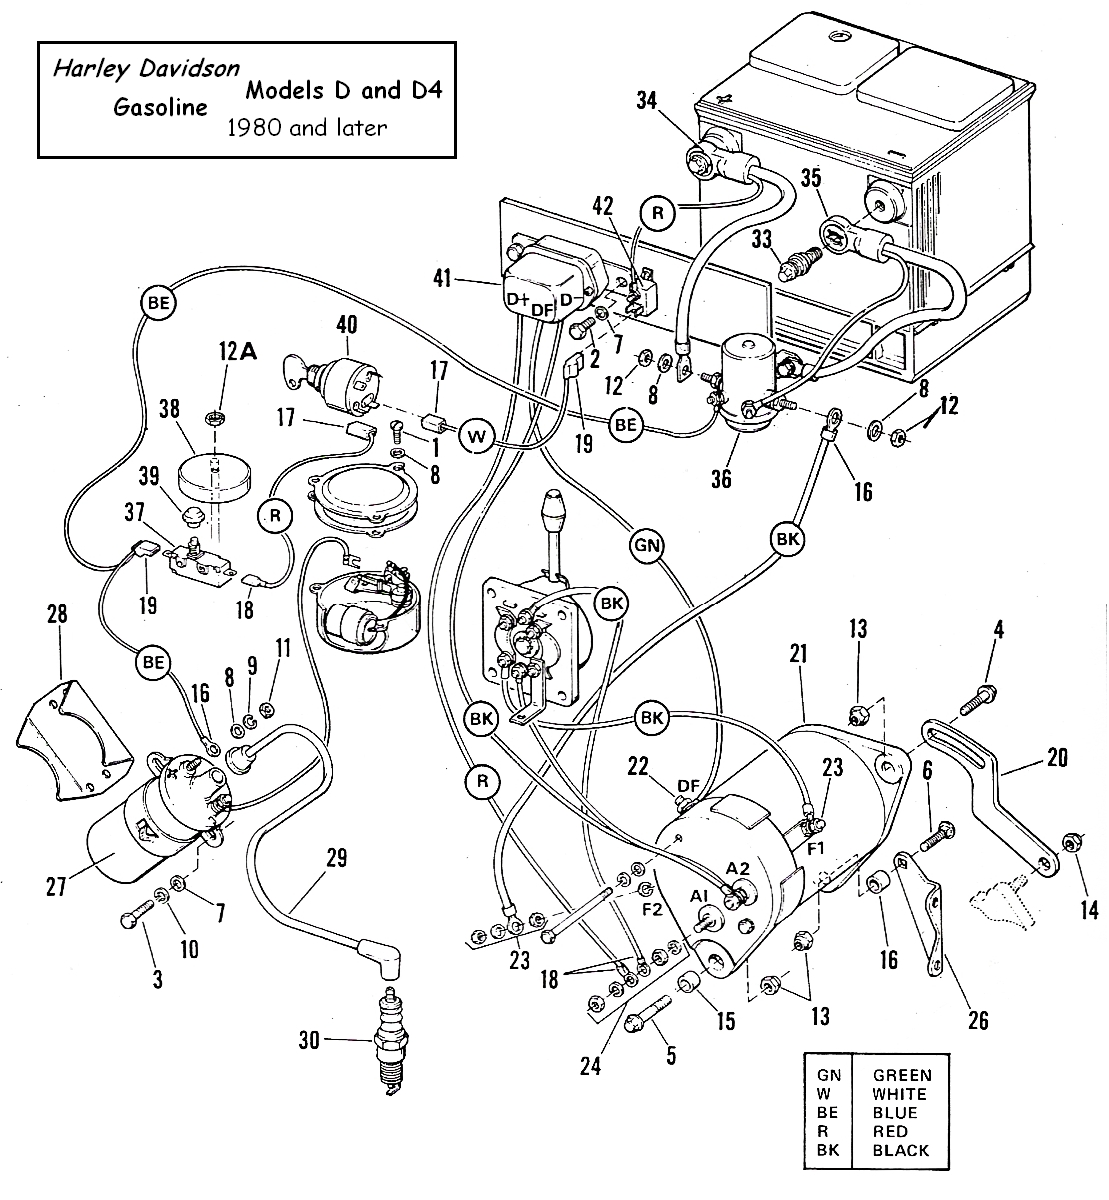 HG 101 vintagegolfcartparts com harley davidson wiring diagram download at n-0.co